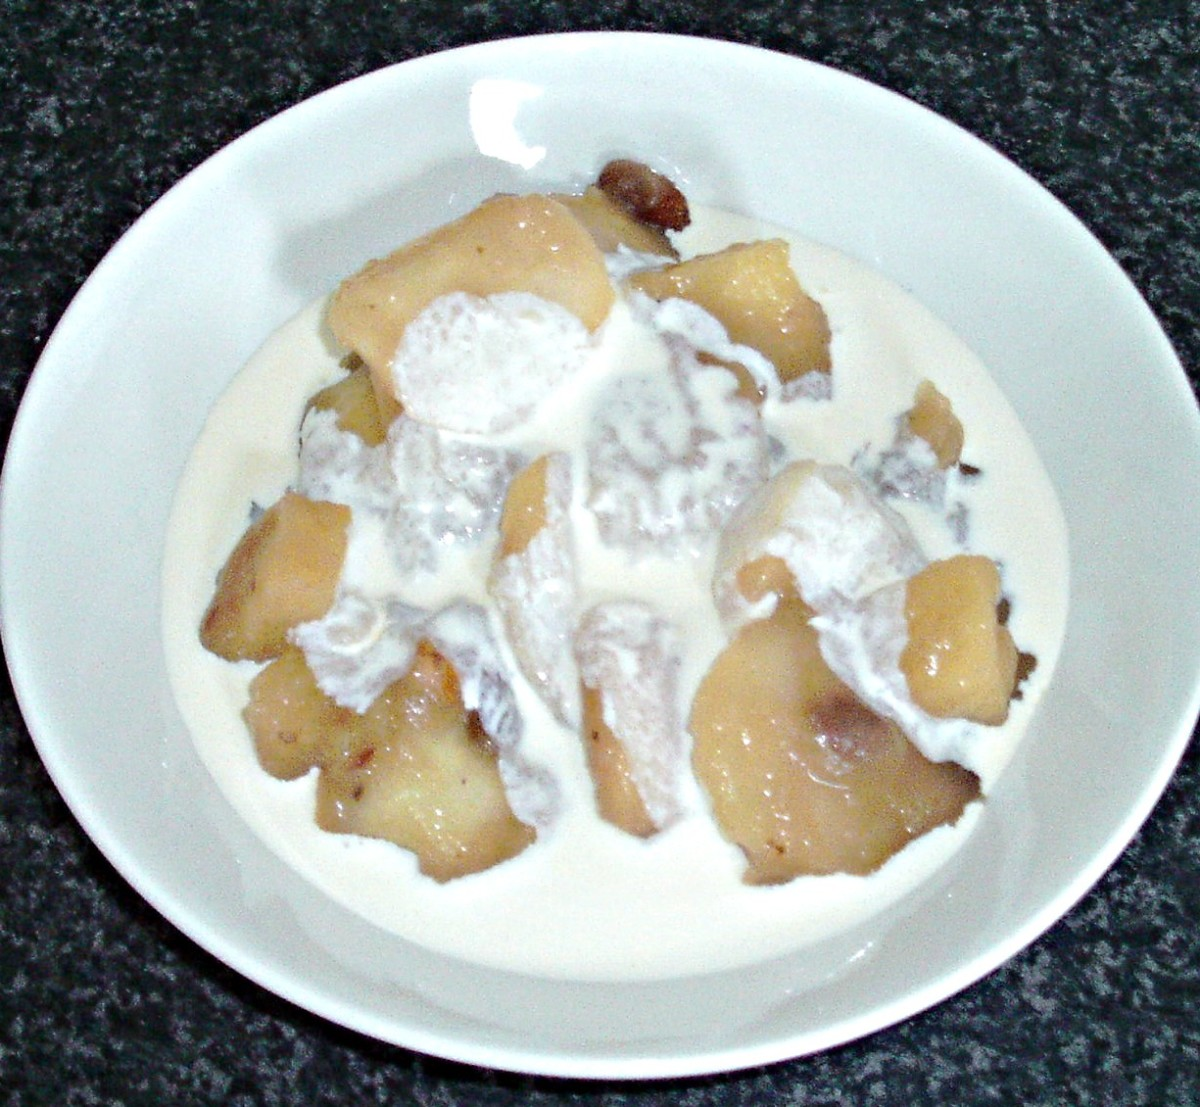 Fresh cream is poured over stewed apples and pineapple with mincemeat